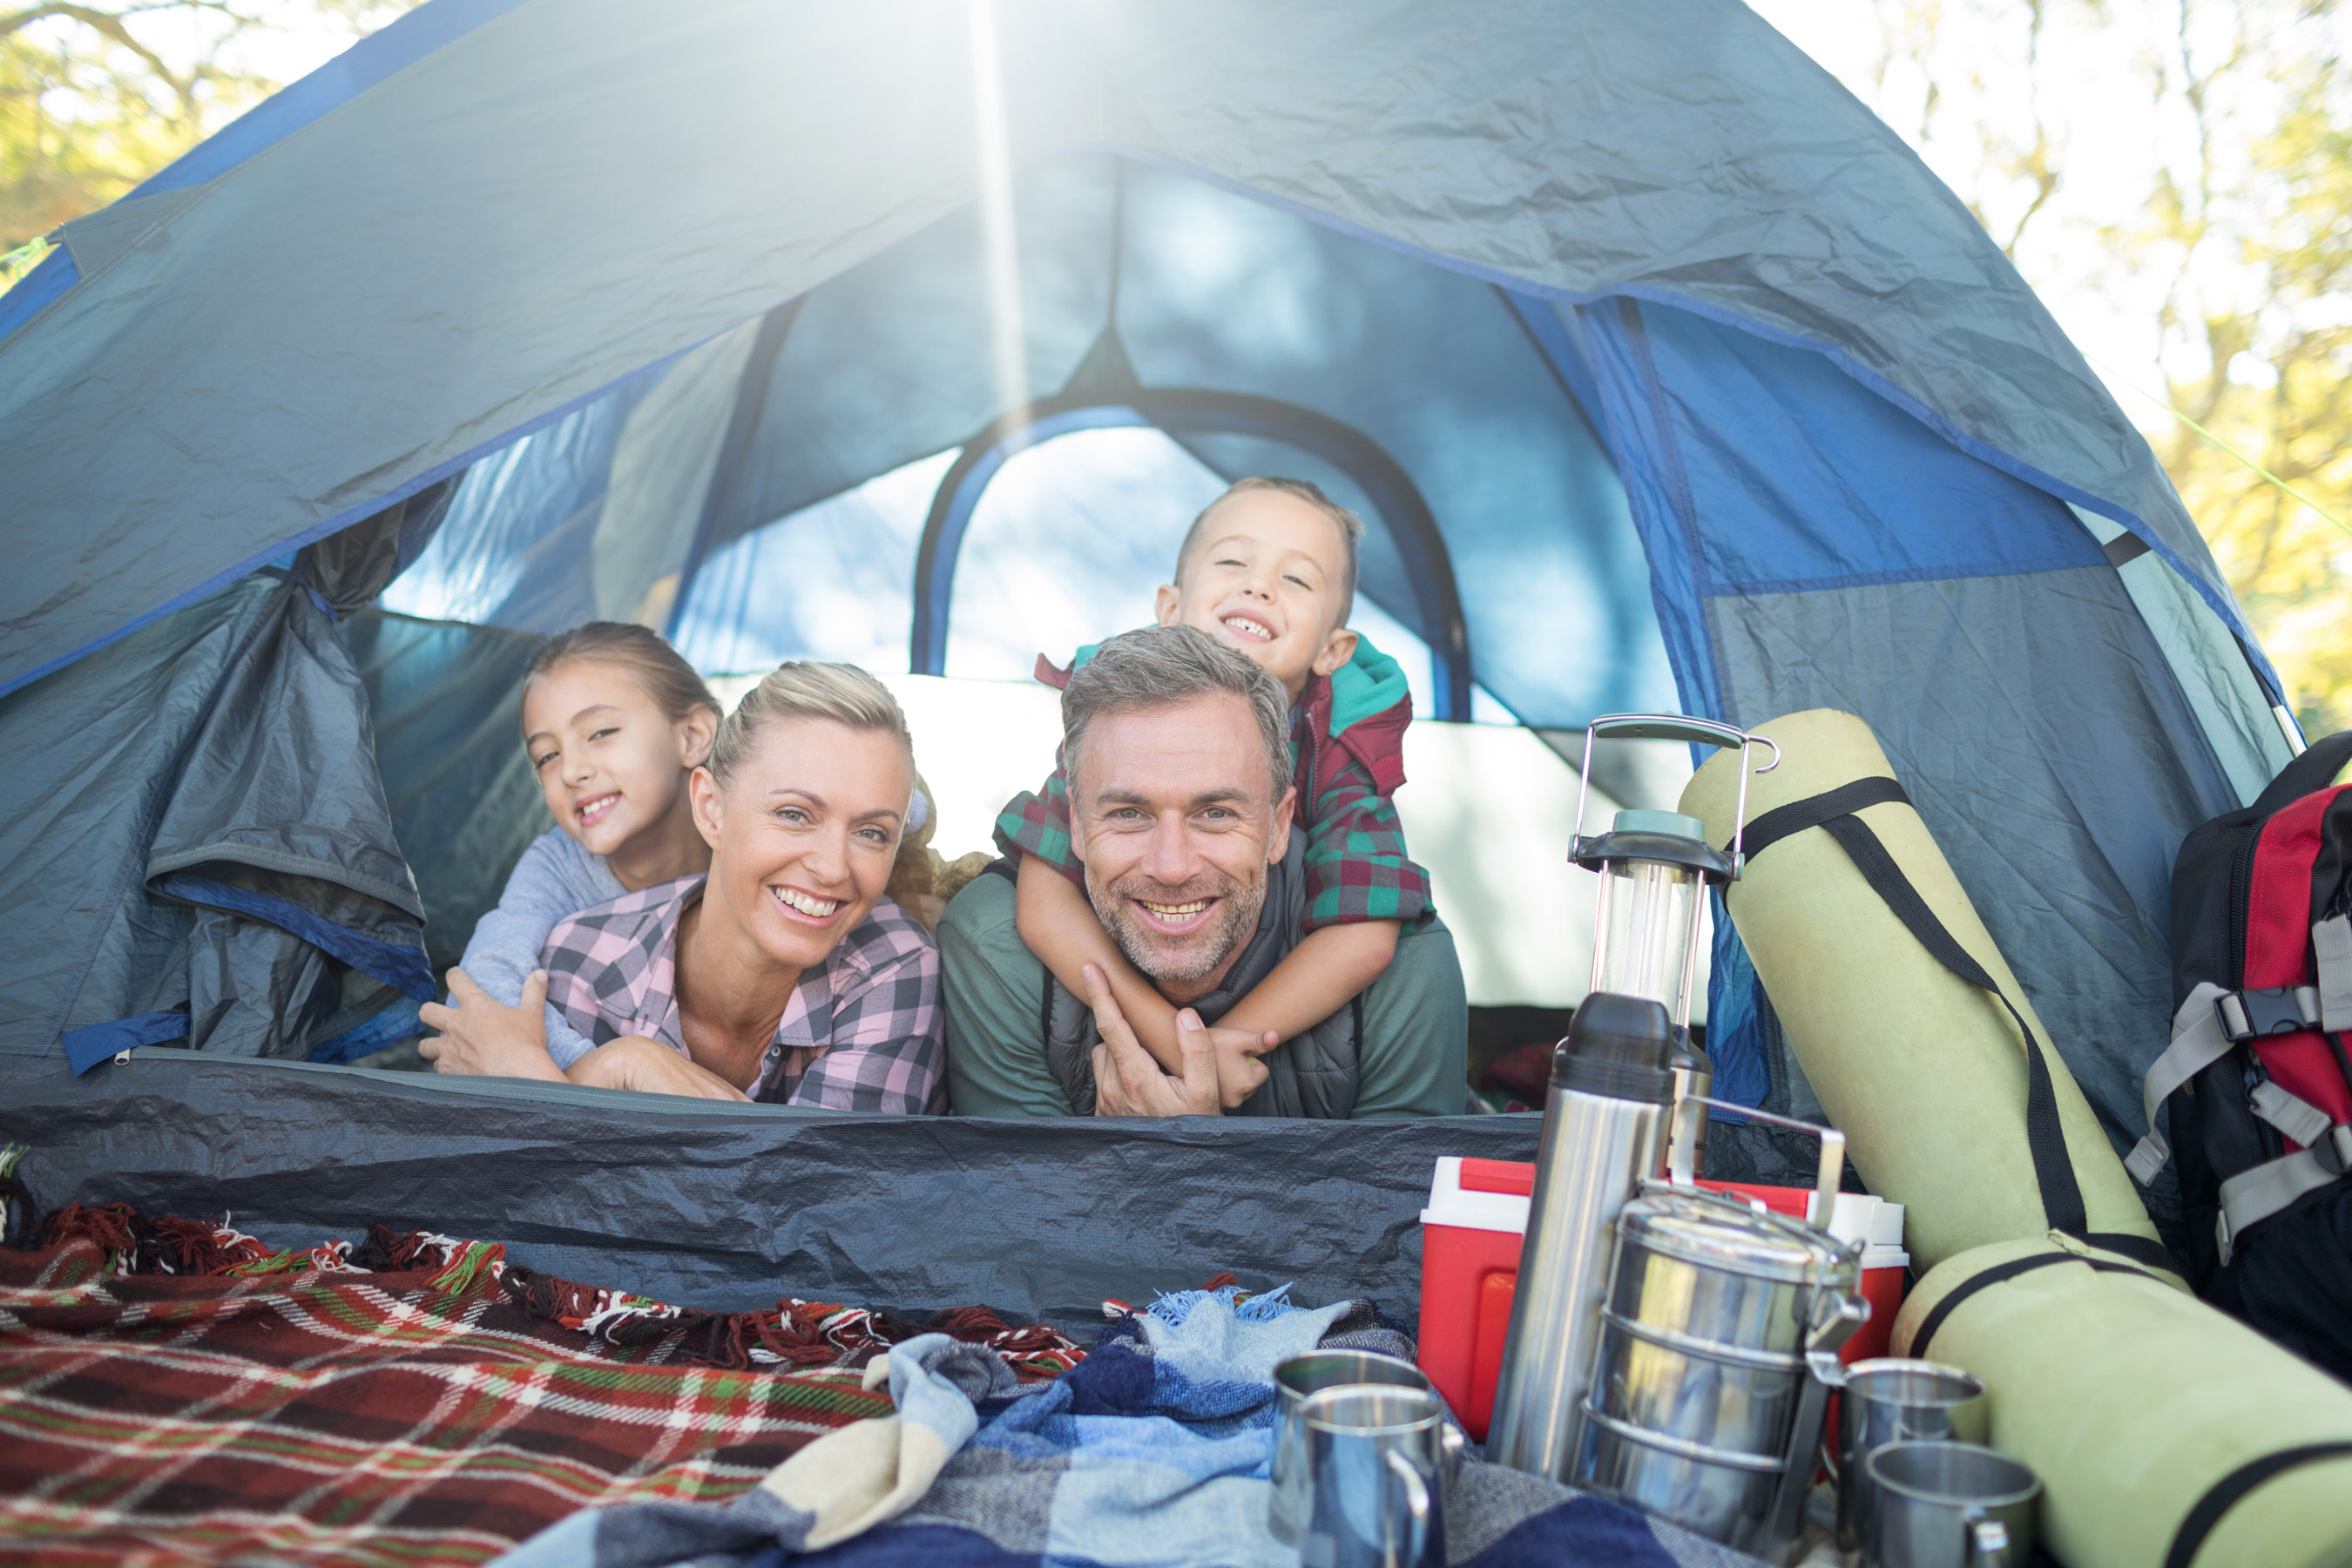 Smiling family lying in the tent